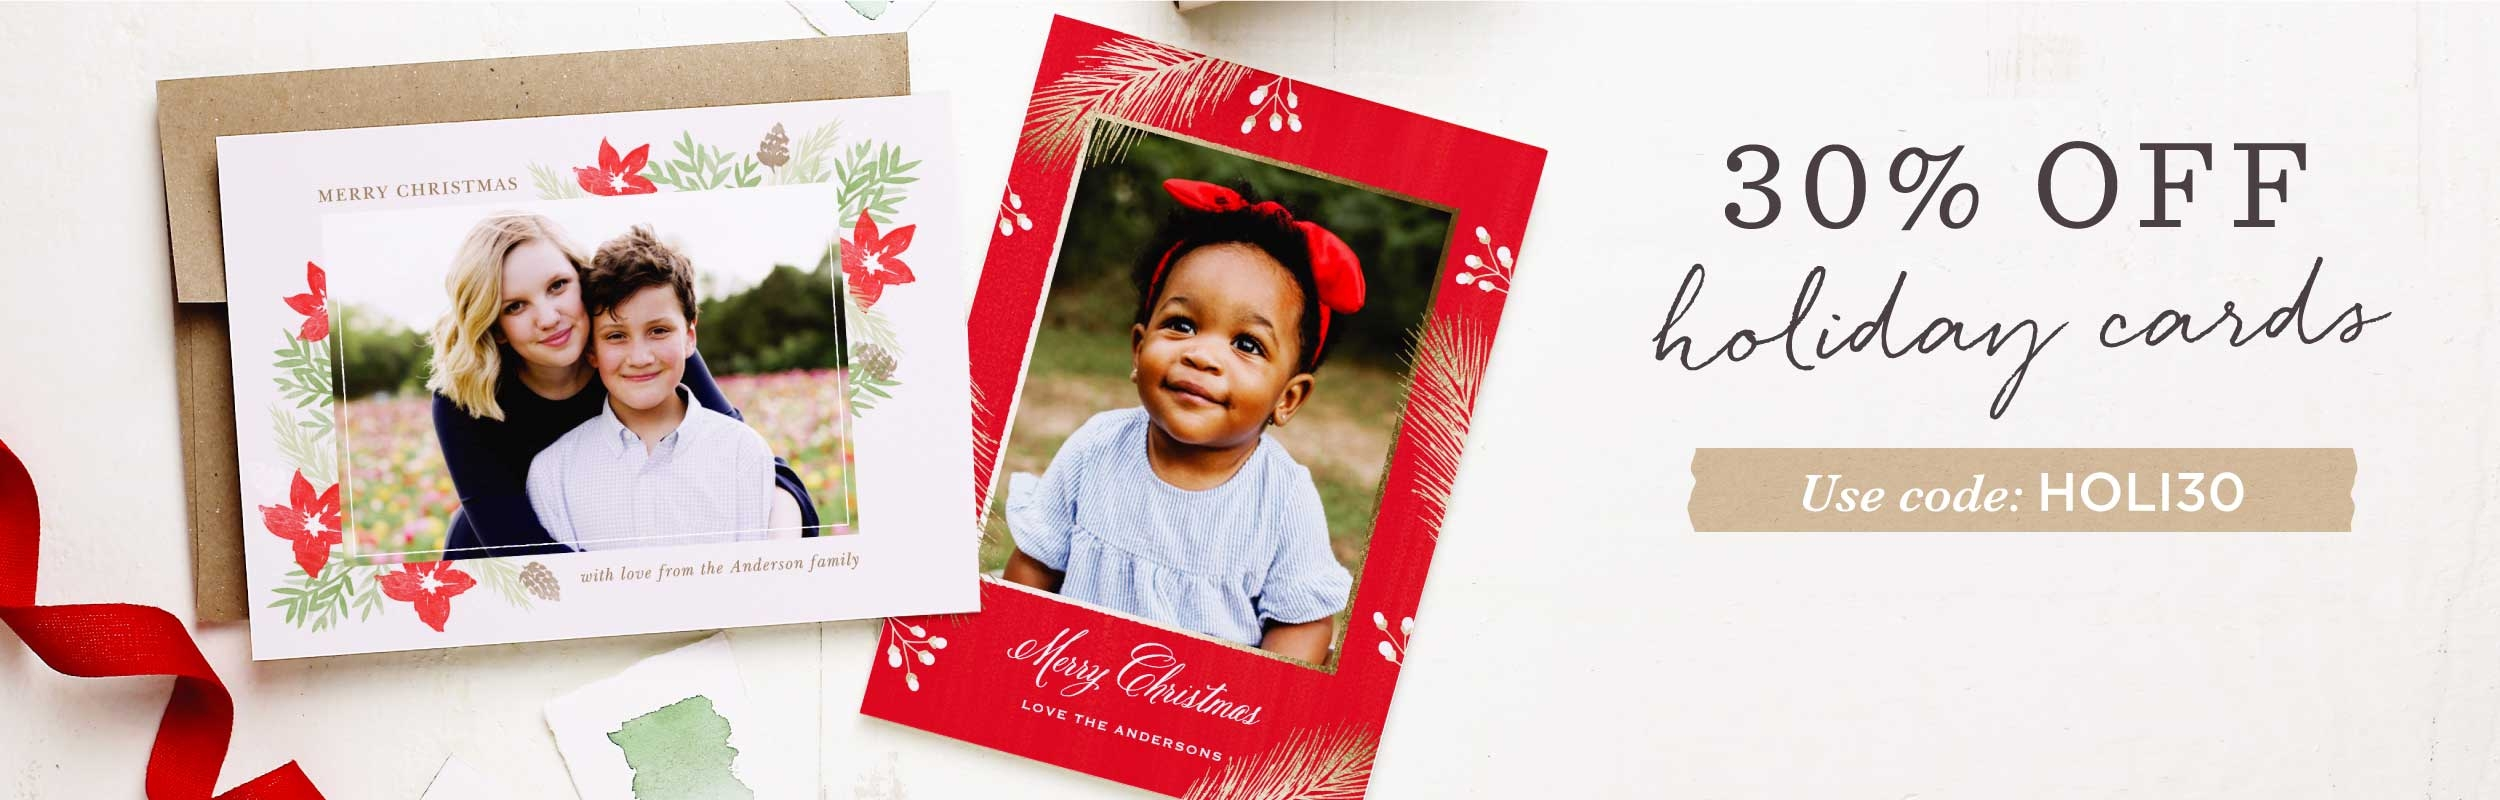 christmas cards - Christmas Photo Cards 2017